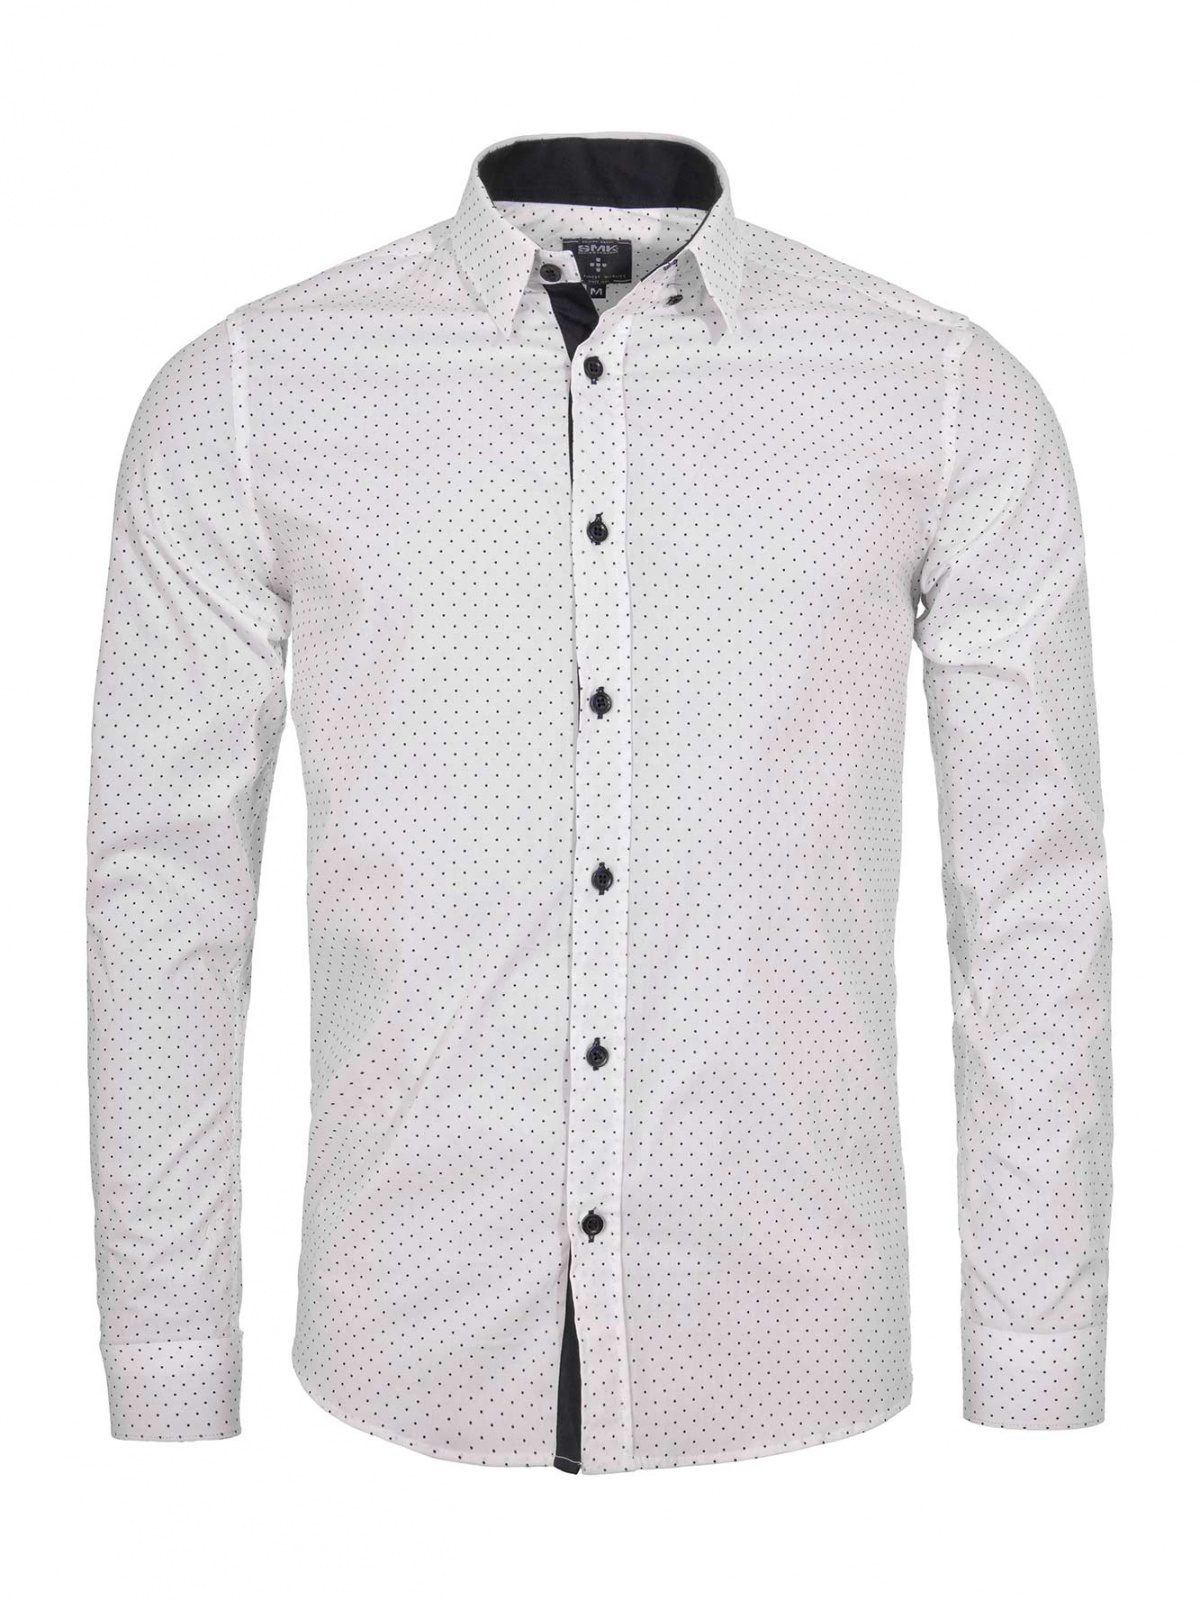 CAMISA SMK BLUE DOT II